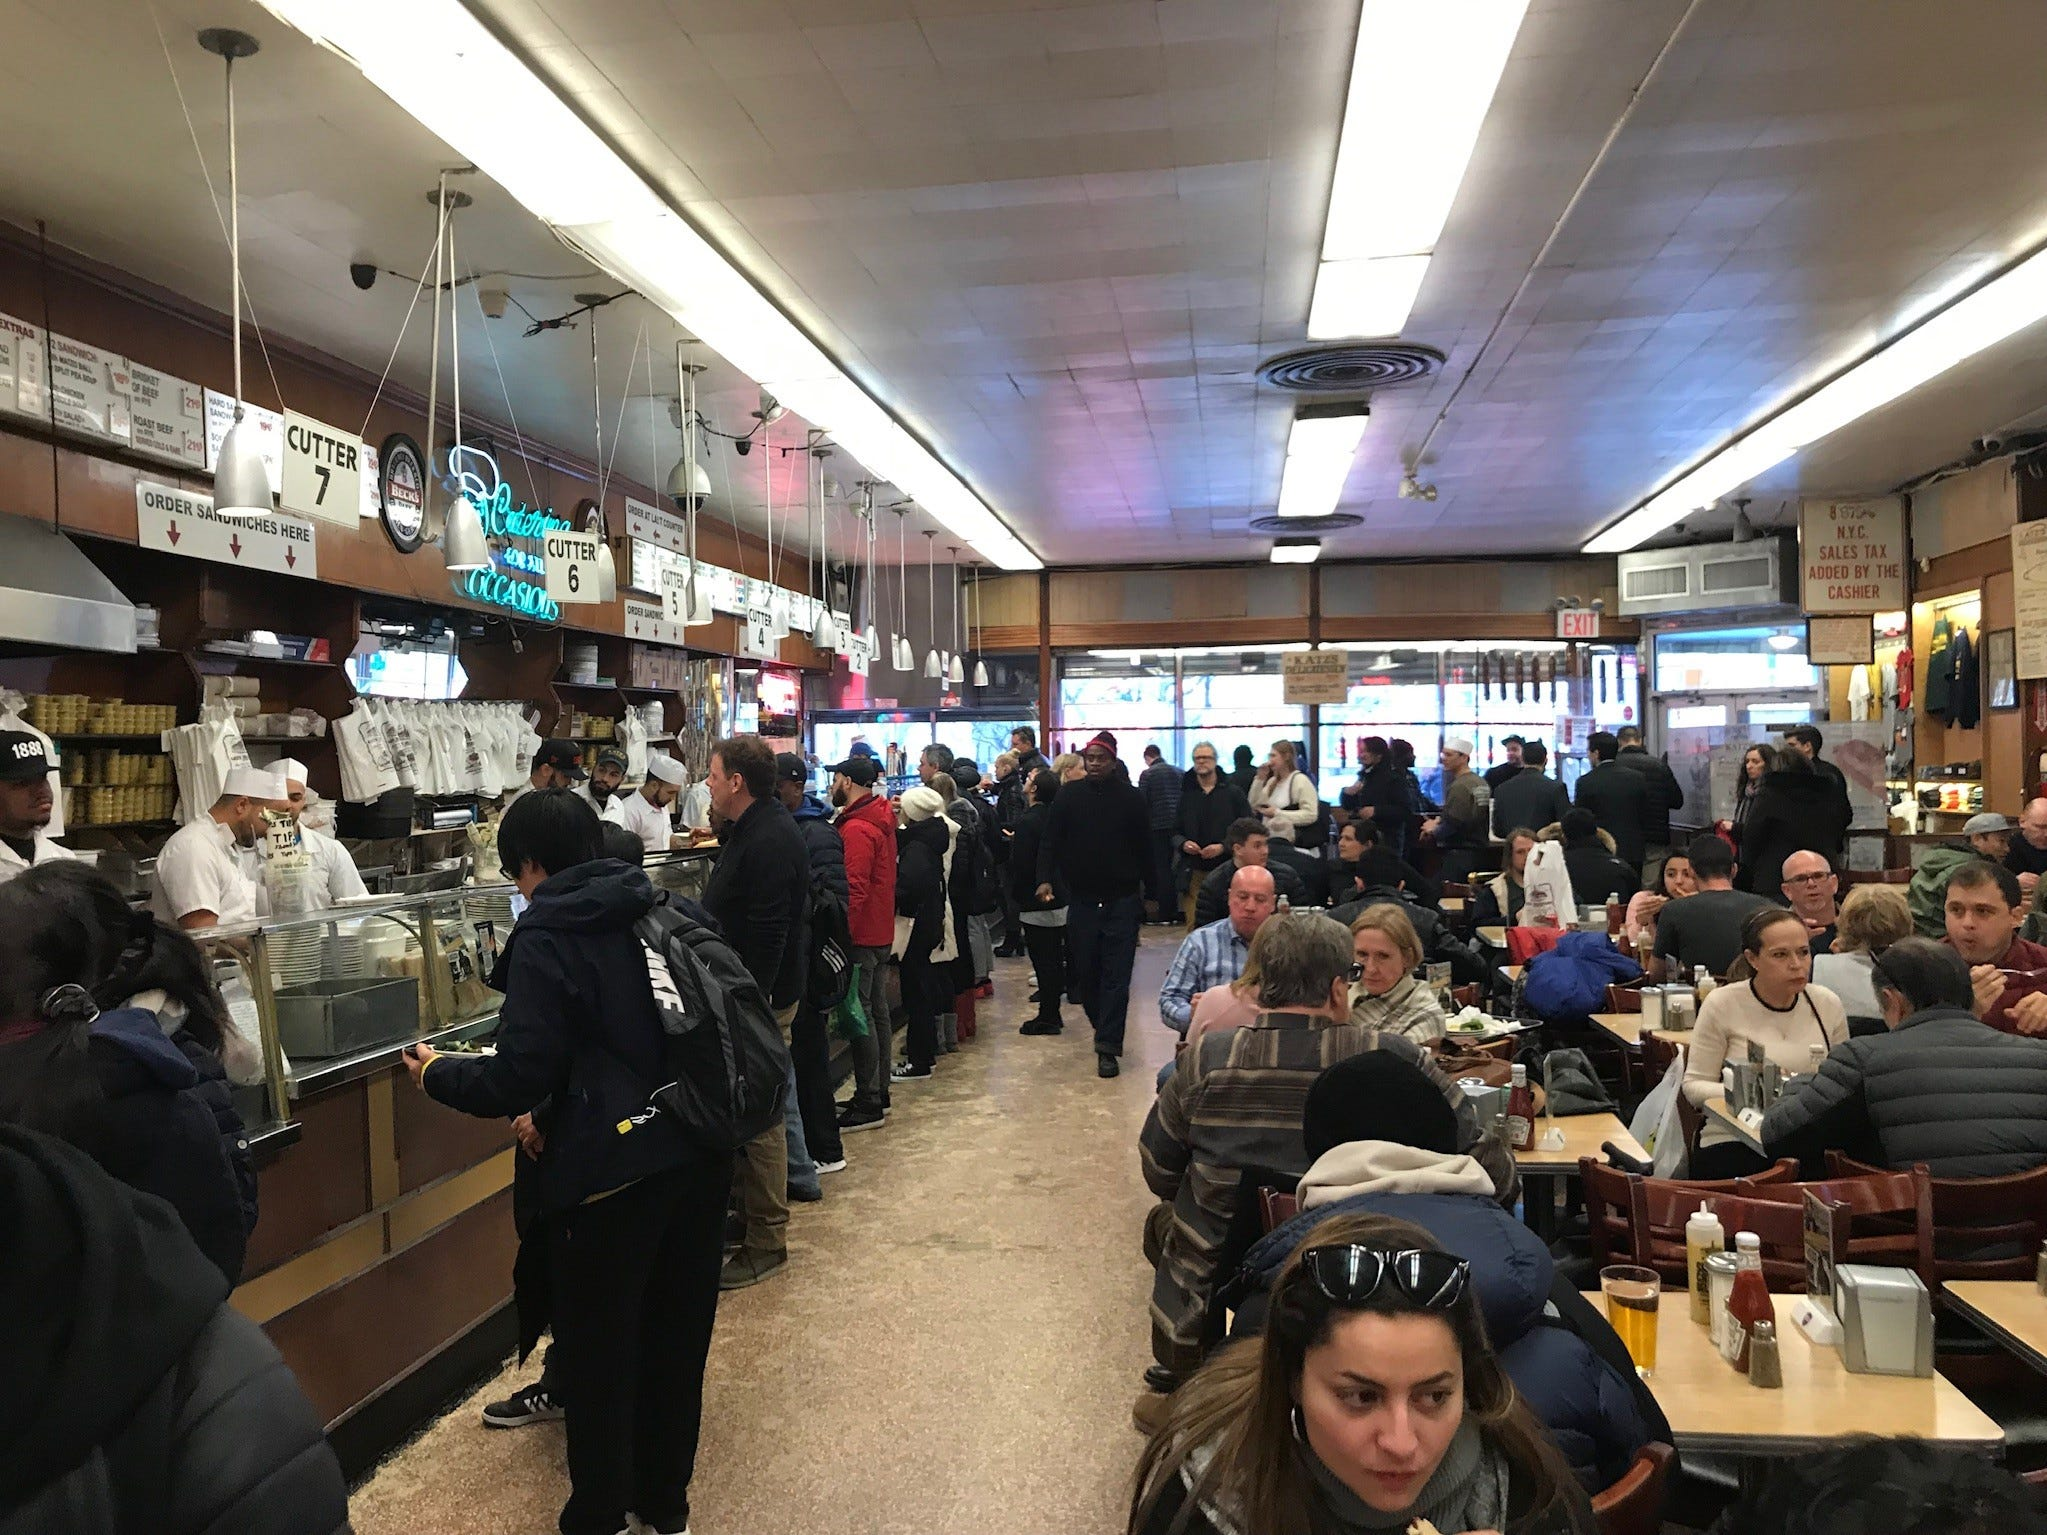 All food is ordered from stations at the very long counter along one side of the restaurant. Customers then carry their trays to the closely packed tables filling the rest of the space.